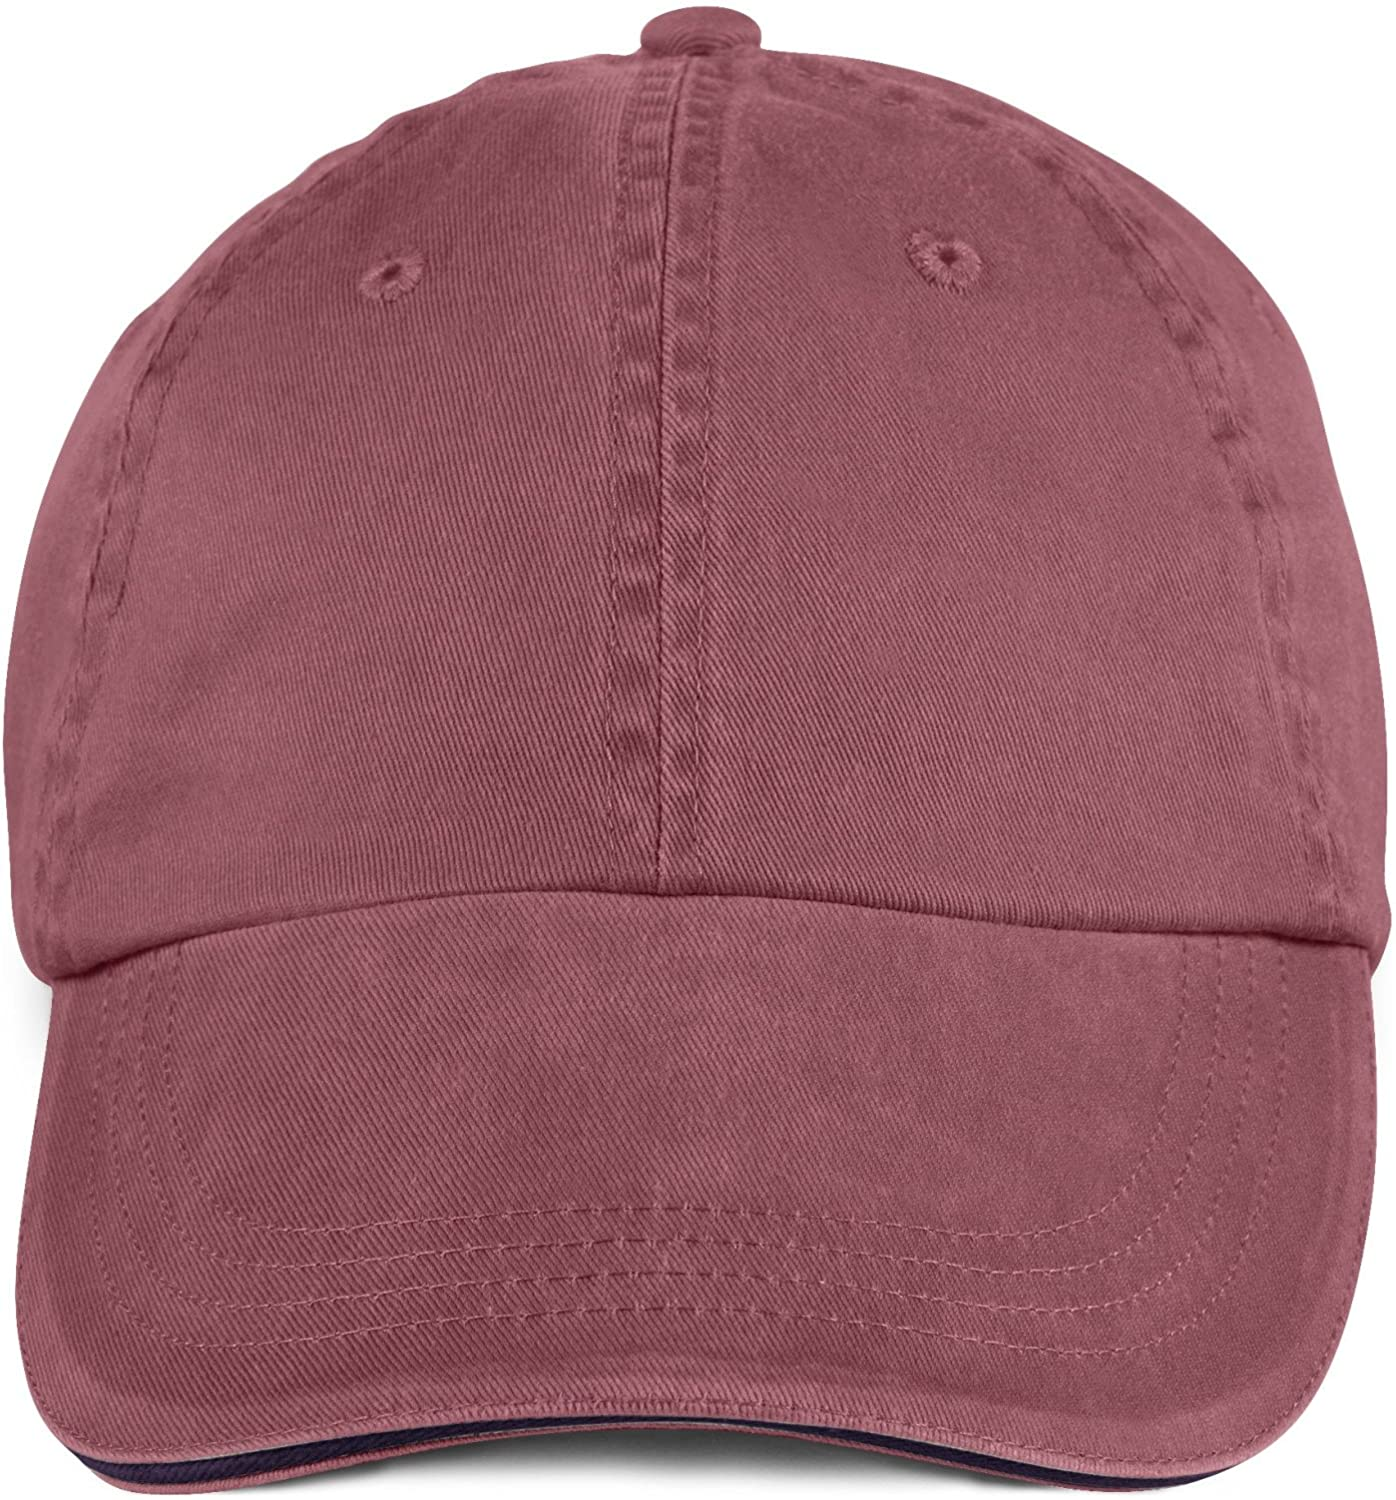 Amazon.com  Anvil 6-Panel Pigment-Dyed Twill Sandwich Baseball Cap 166   Clothing 60ccd78f3cbe